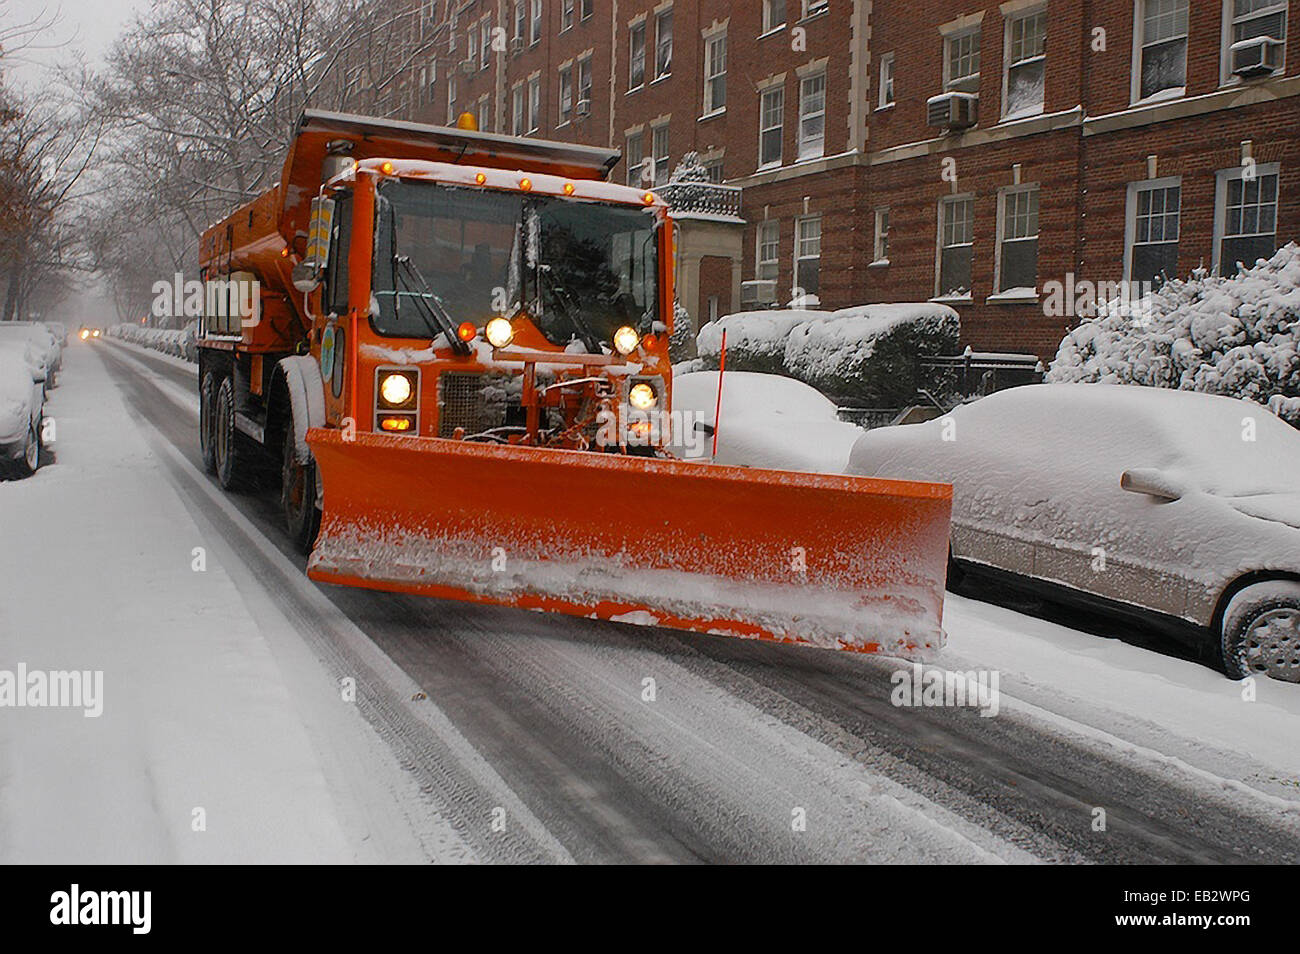 A snow plough passes parked cars in New York City during a blizzard. - Stock Image